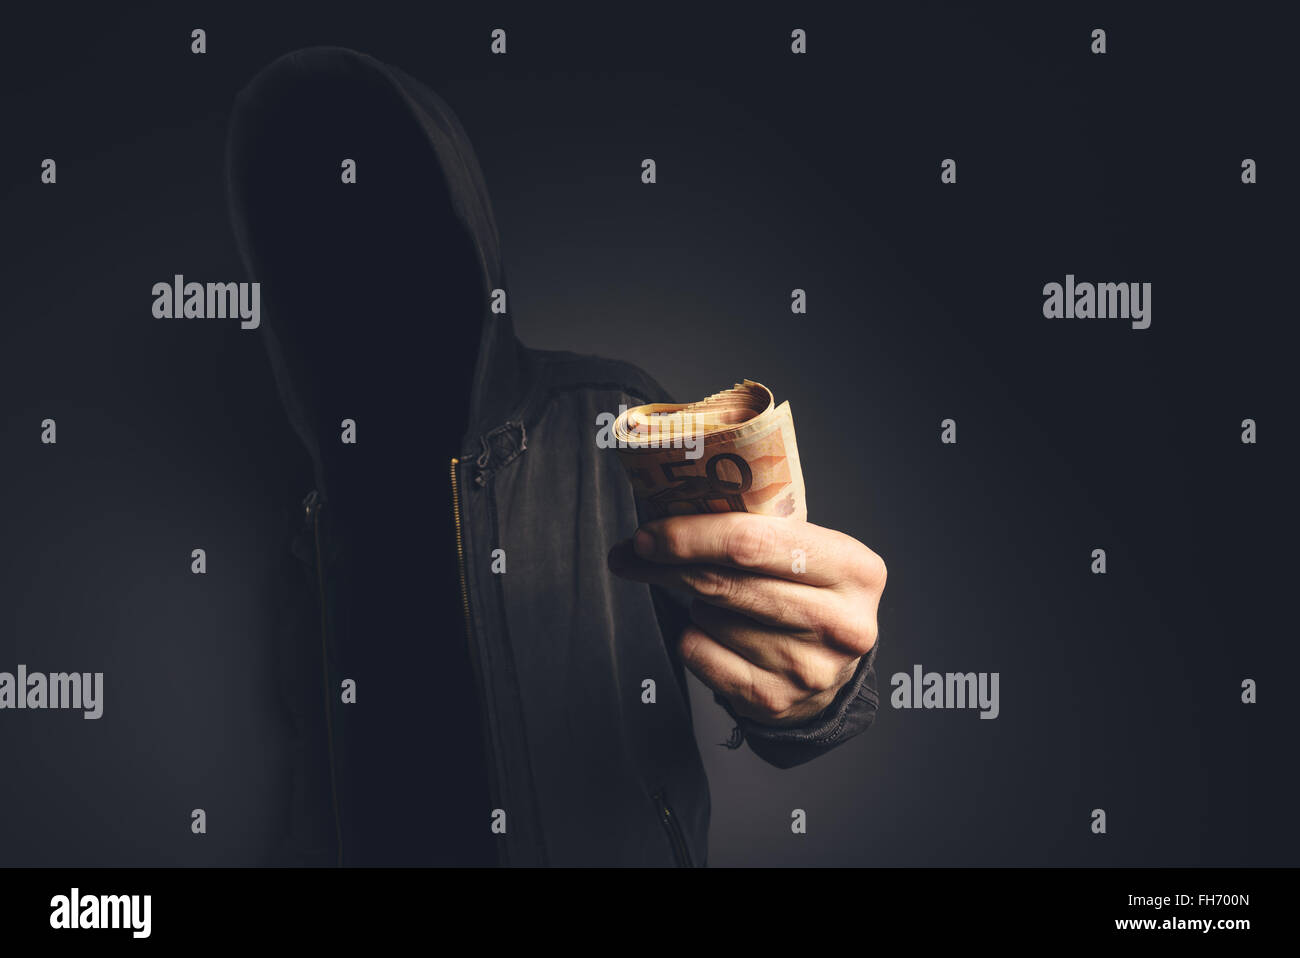 Unrecognizable hooded computer hacker offering cash money, cyber crime, blackmail and extortion concept. - Stock Image